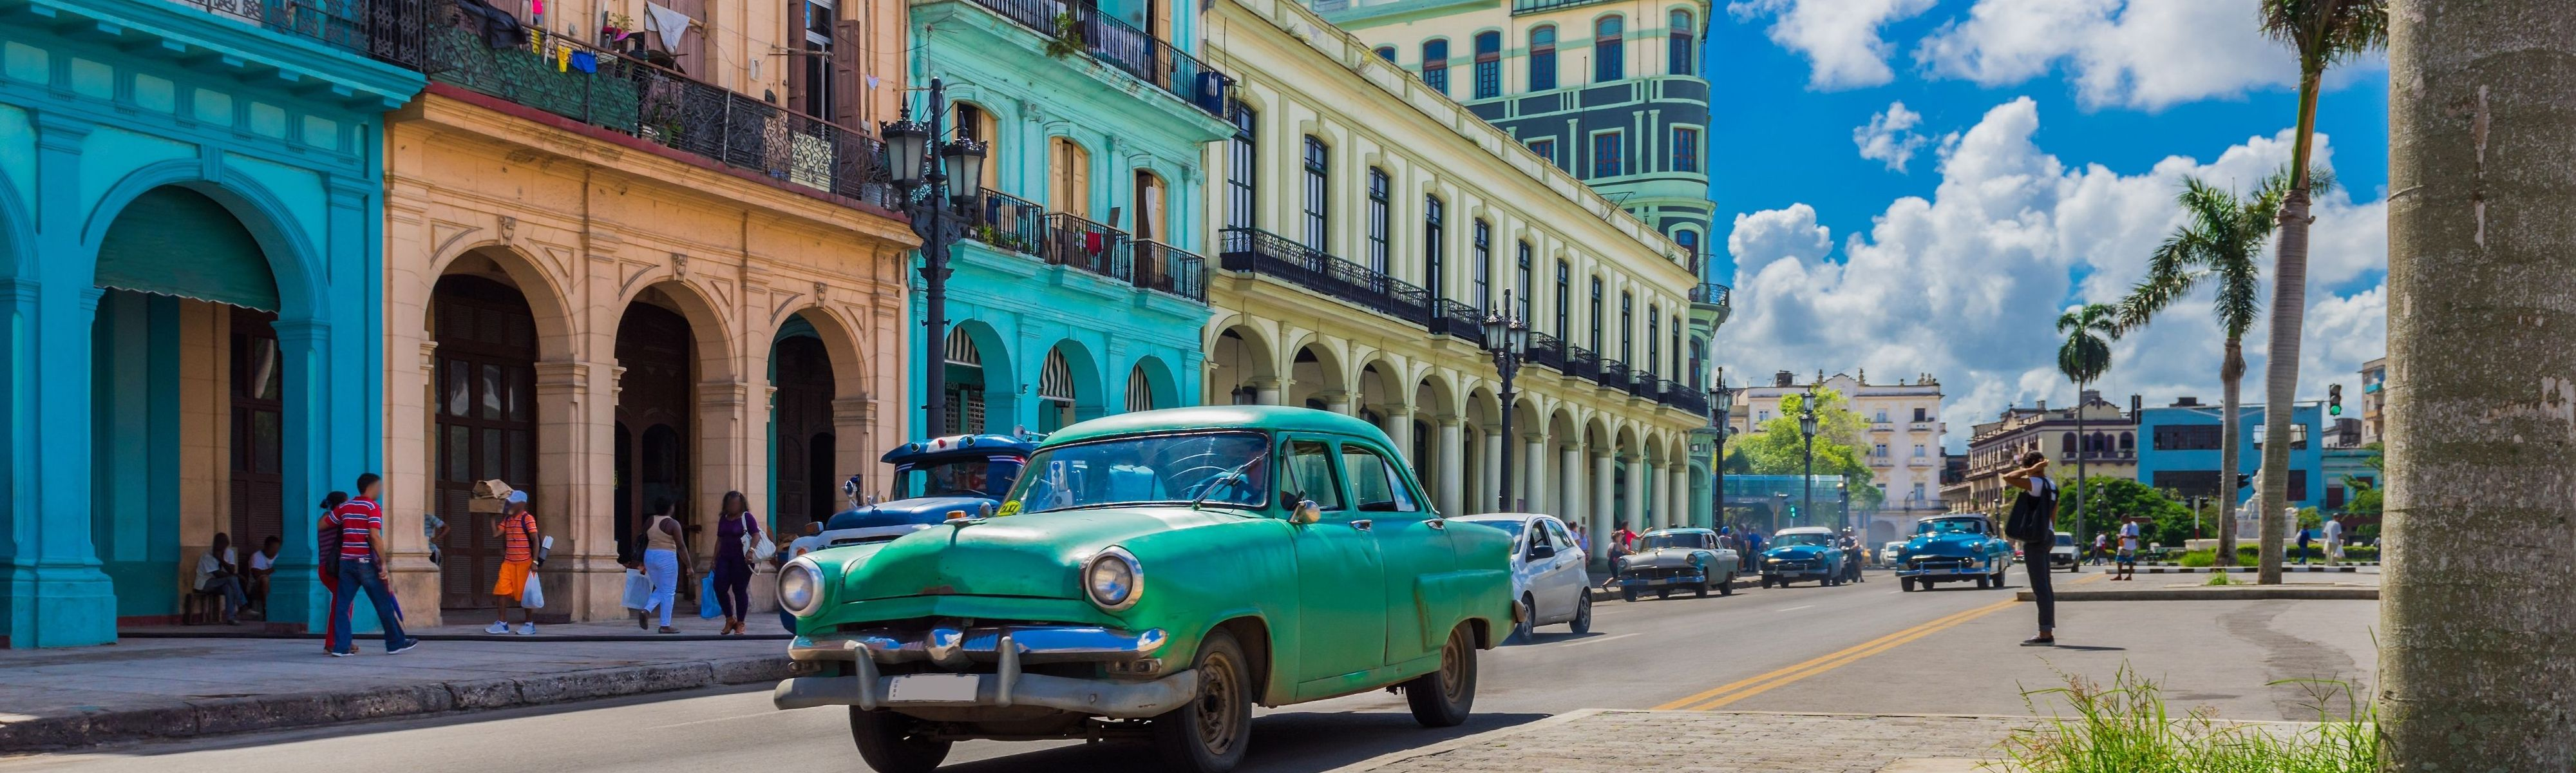 Old cars driving through vibrant Cuba